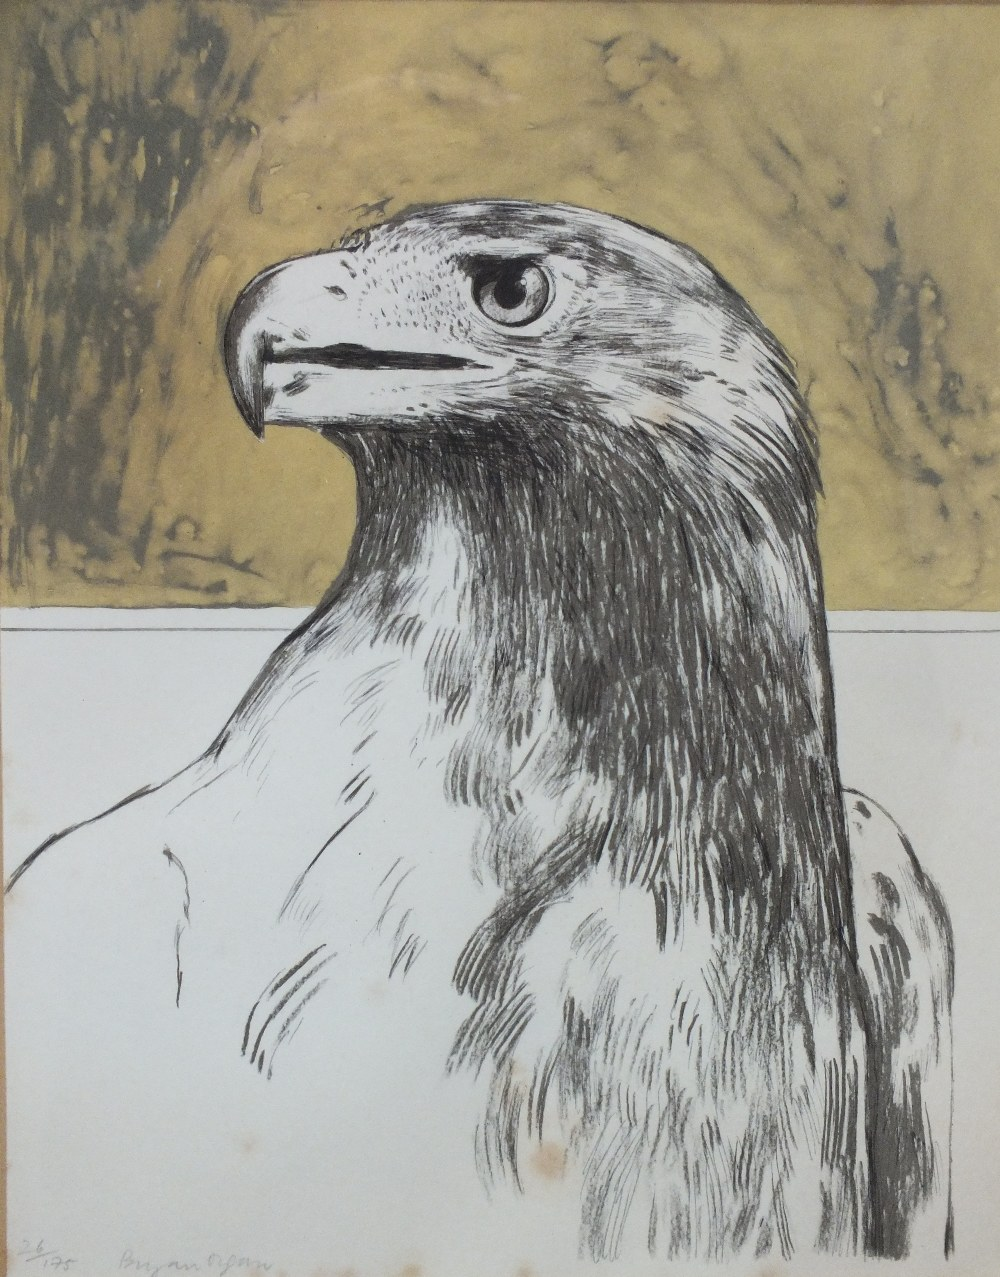 BRYAN ORGAN (b.1935). Study of an eagle, signed in pencil lower left, limited edition lithograph